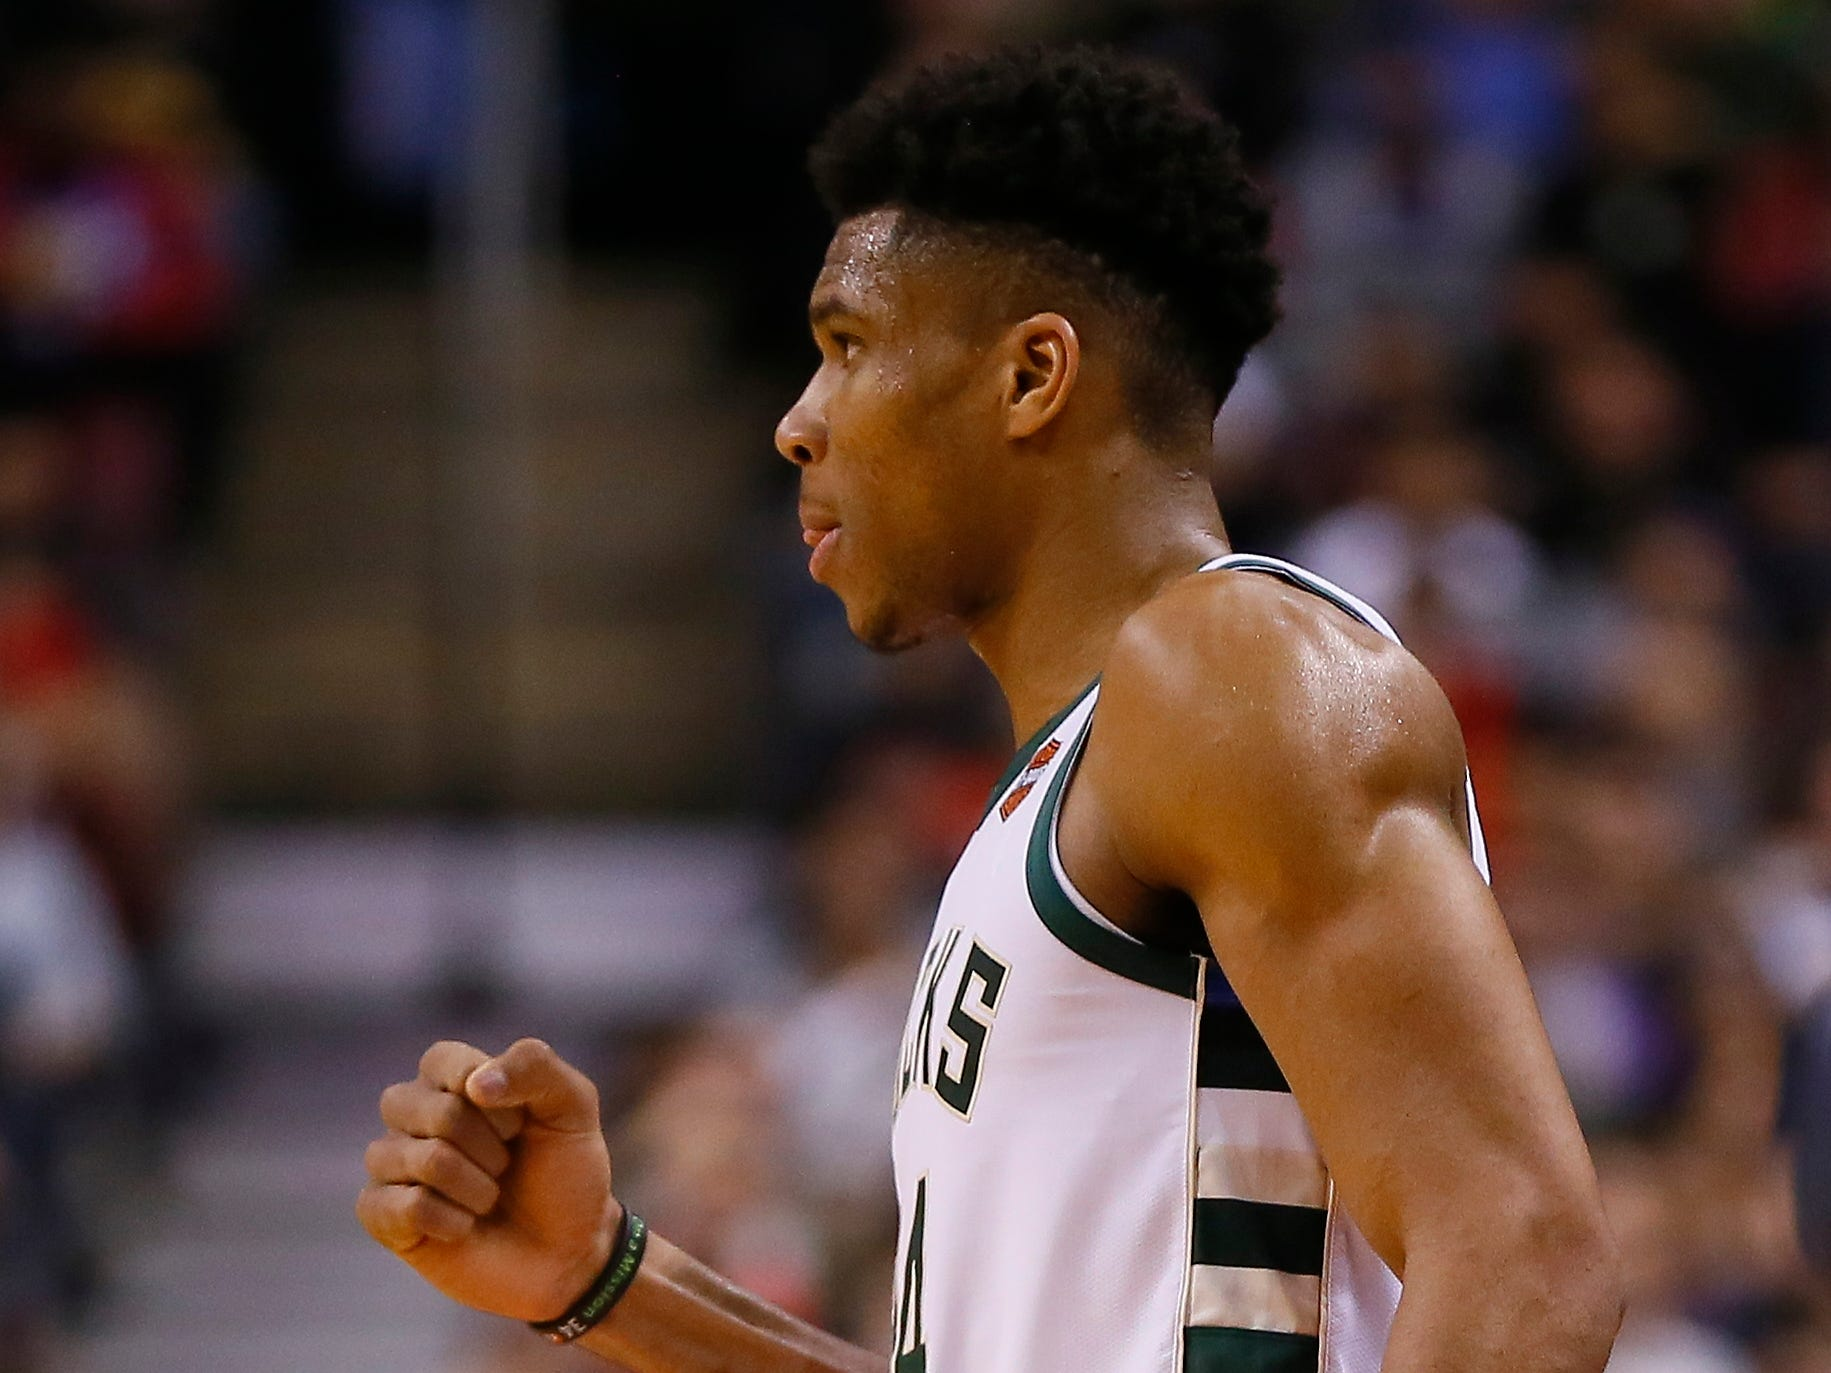 Giannis Antetokounmpo gives it a first pump after a play late in the Bucks' victory over the host Raptors on Thursday night.